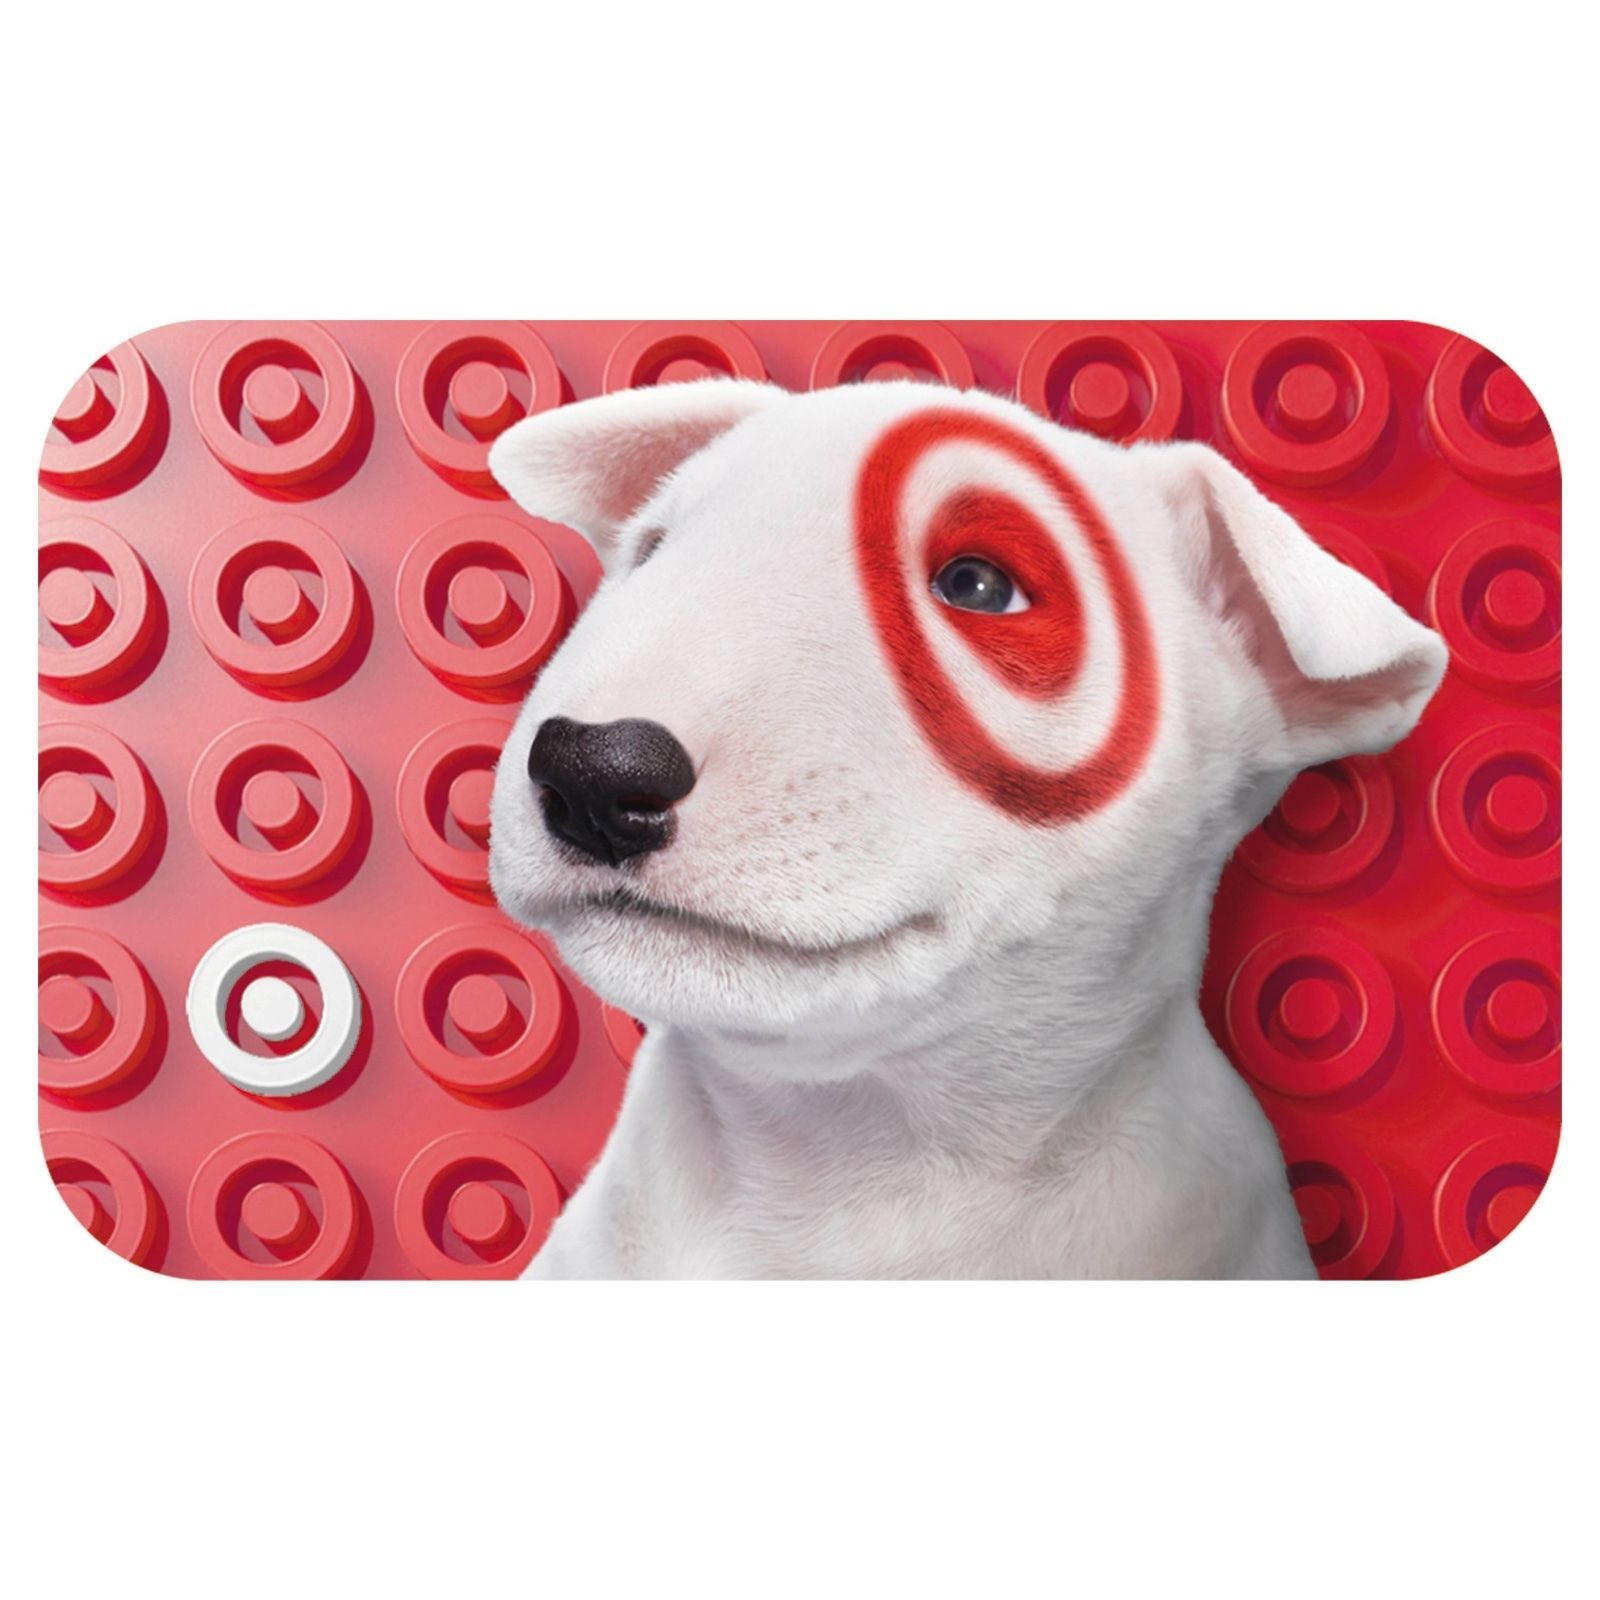 Coupons GiftCards Brand New Unused Target Puppy Dog Bullseye 100 Gift Card Free Fast Shipping